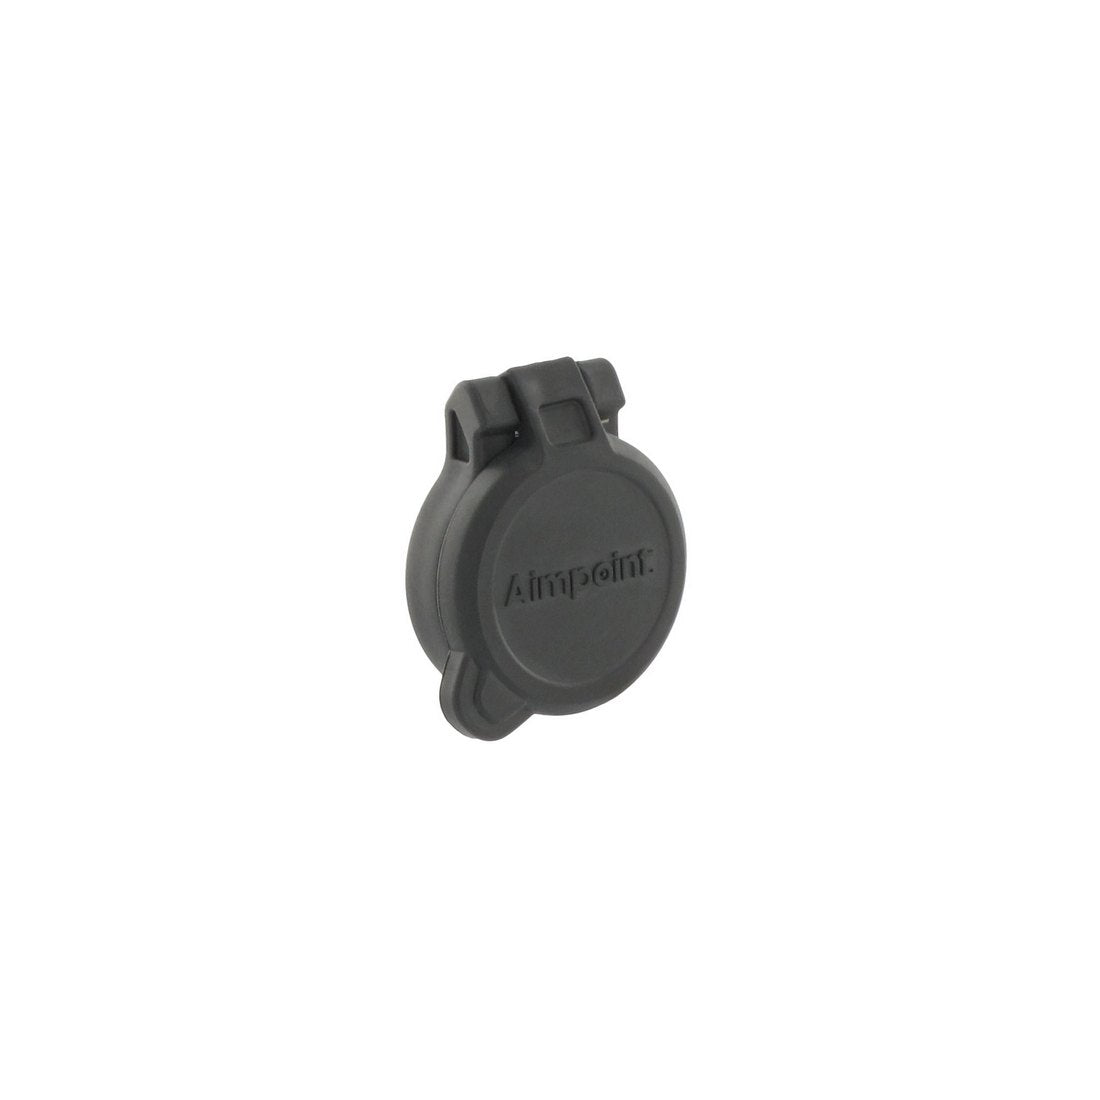 Aimpoint 12224 Flip-Up Rear Cover - Security Pro USA